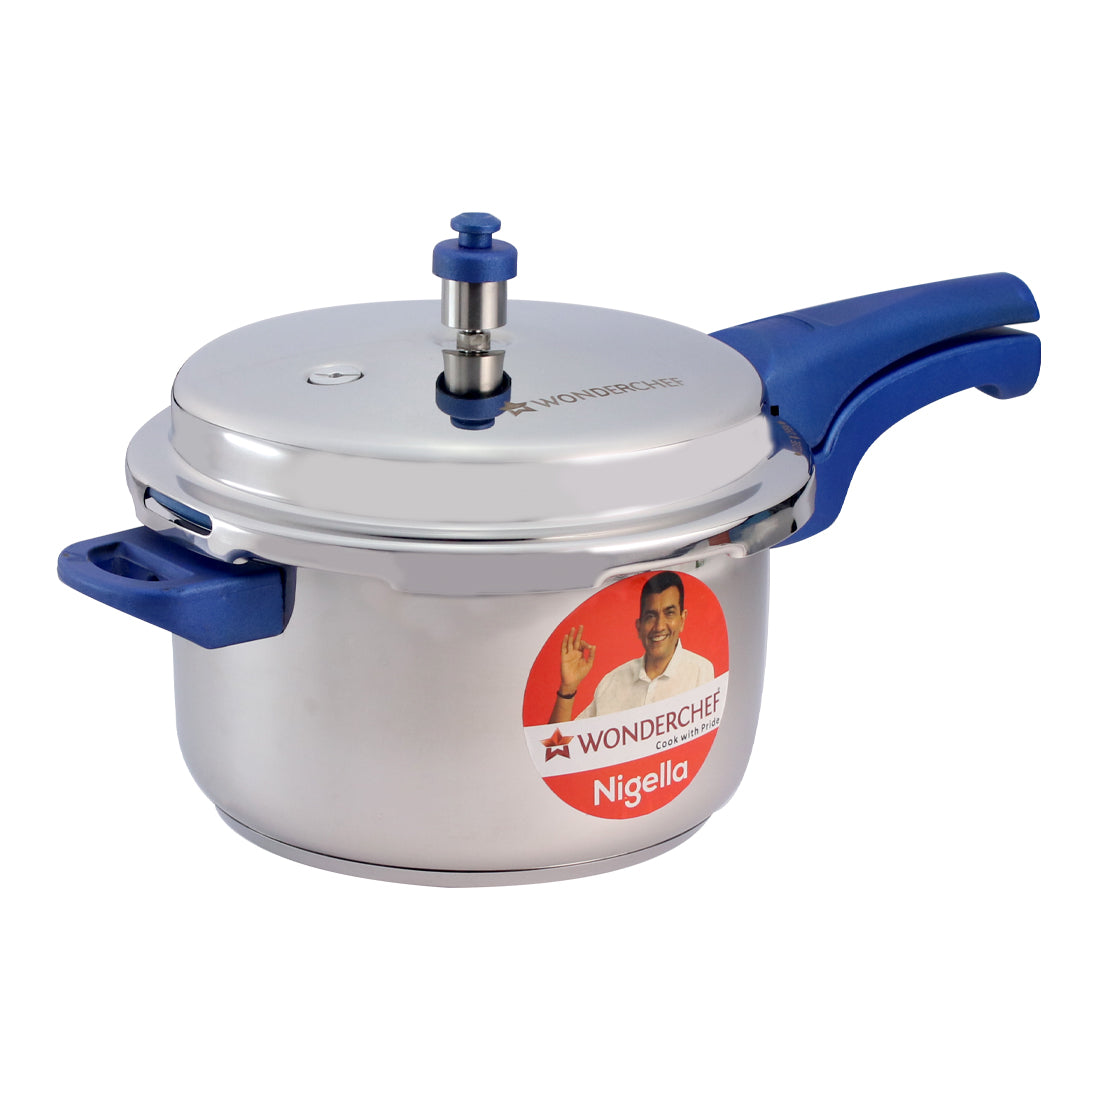 Wonderchef Nigella Pressure Cooker Blue 7L